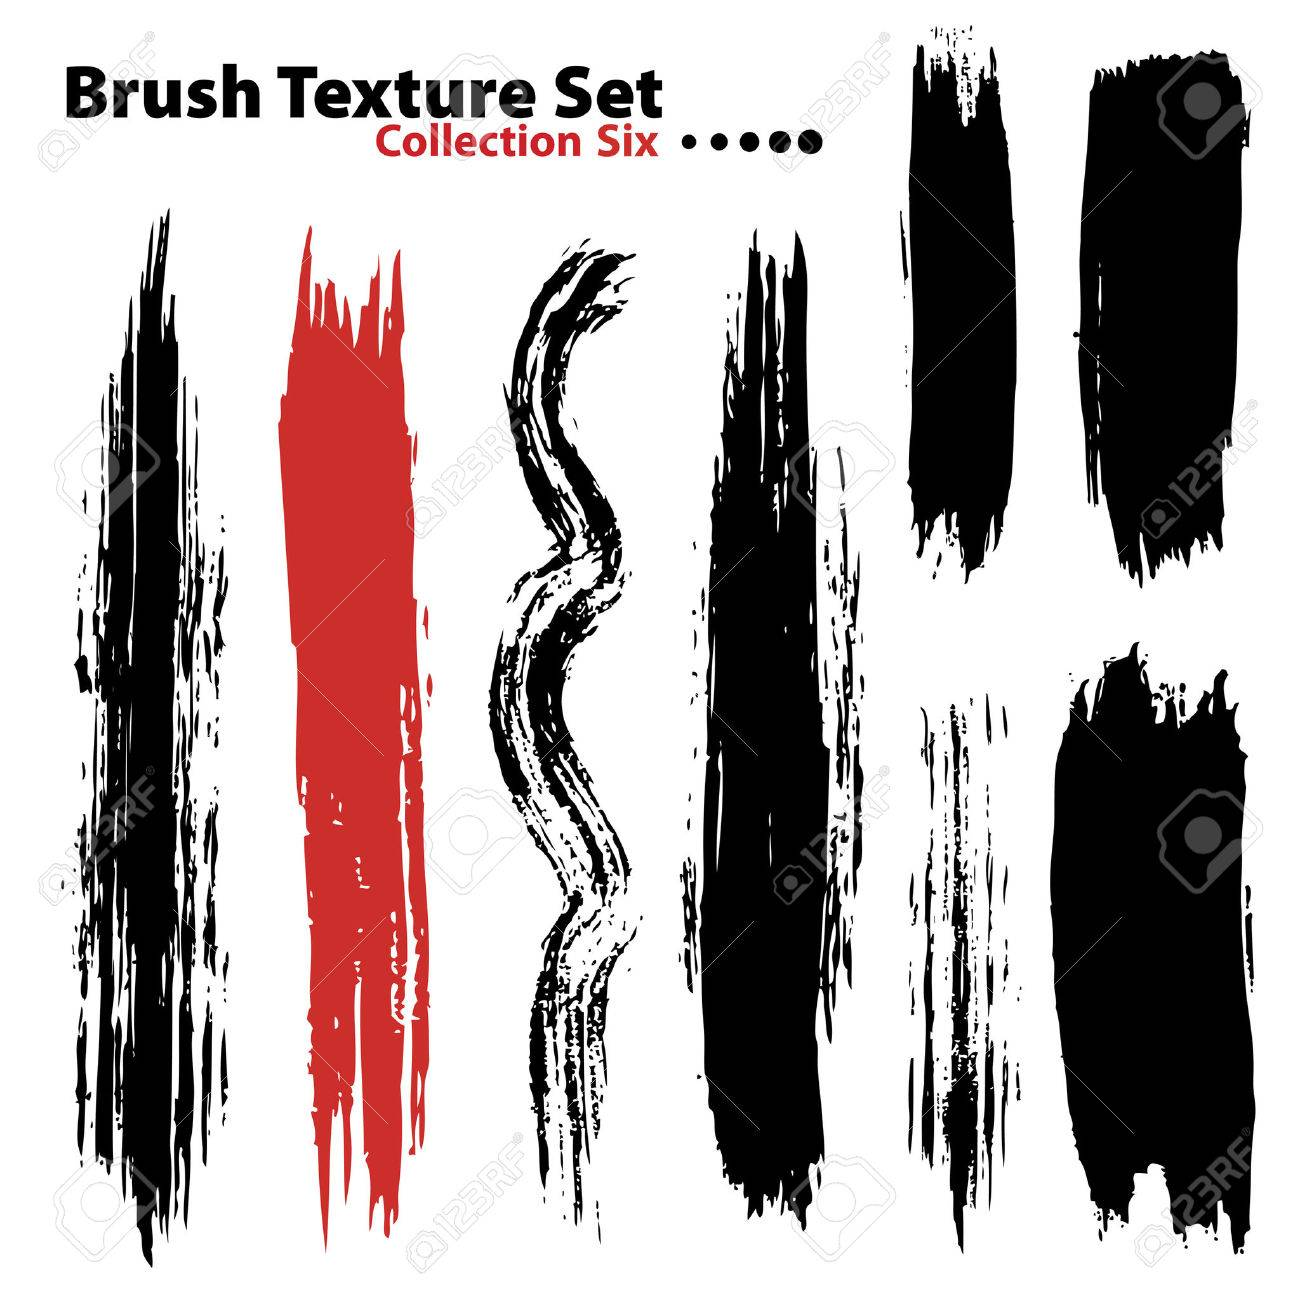 Vector outline traces of customizable organic paint brushes (strokes) in different shapes and styles, highly detailed. Grouped individually, easily editable. Collection set number 6. - 4039133